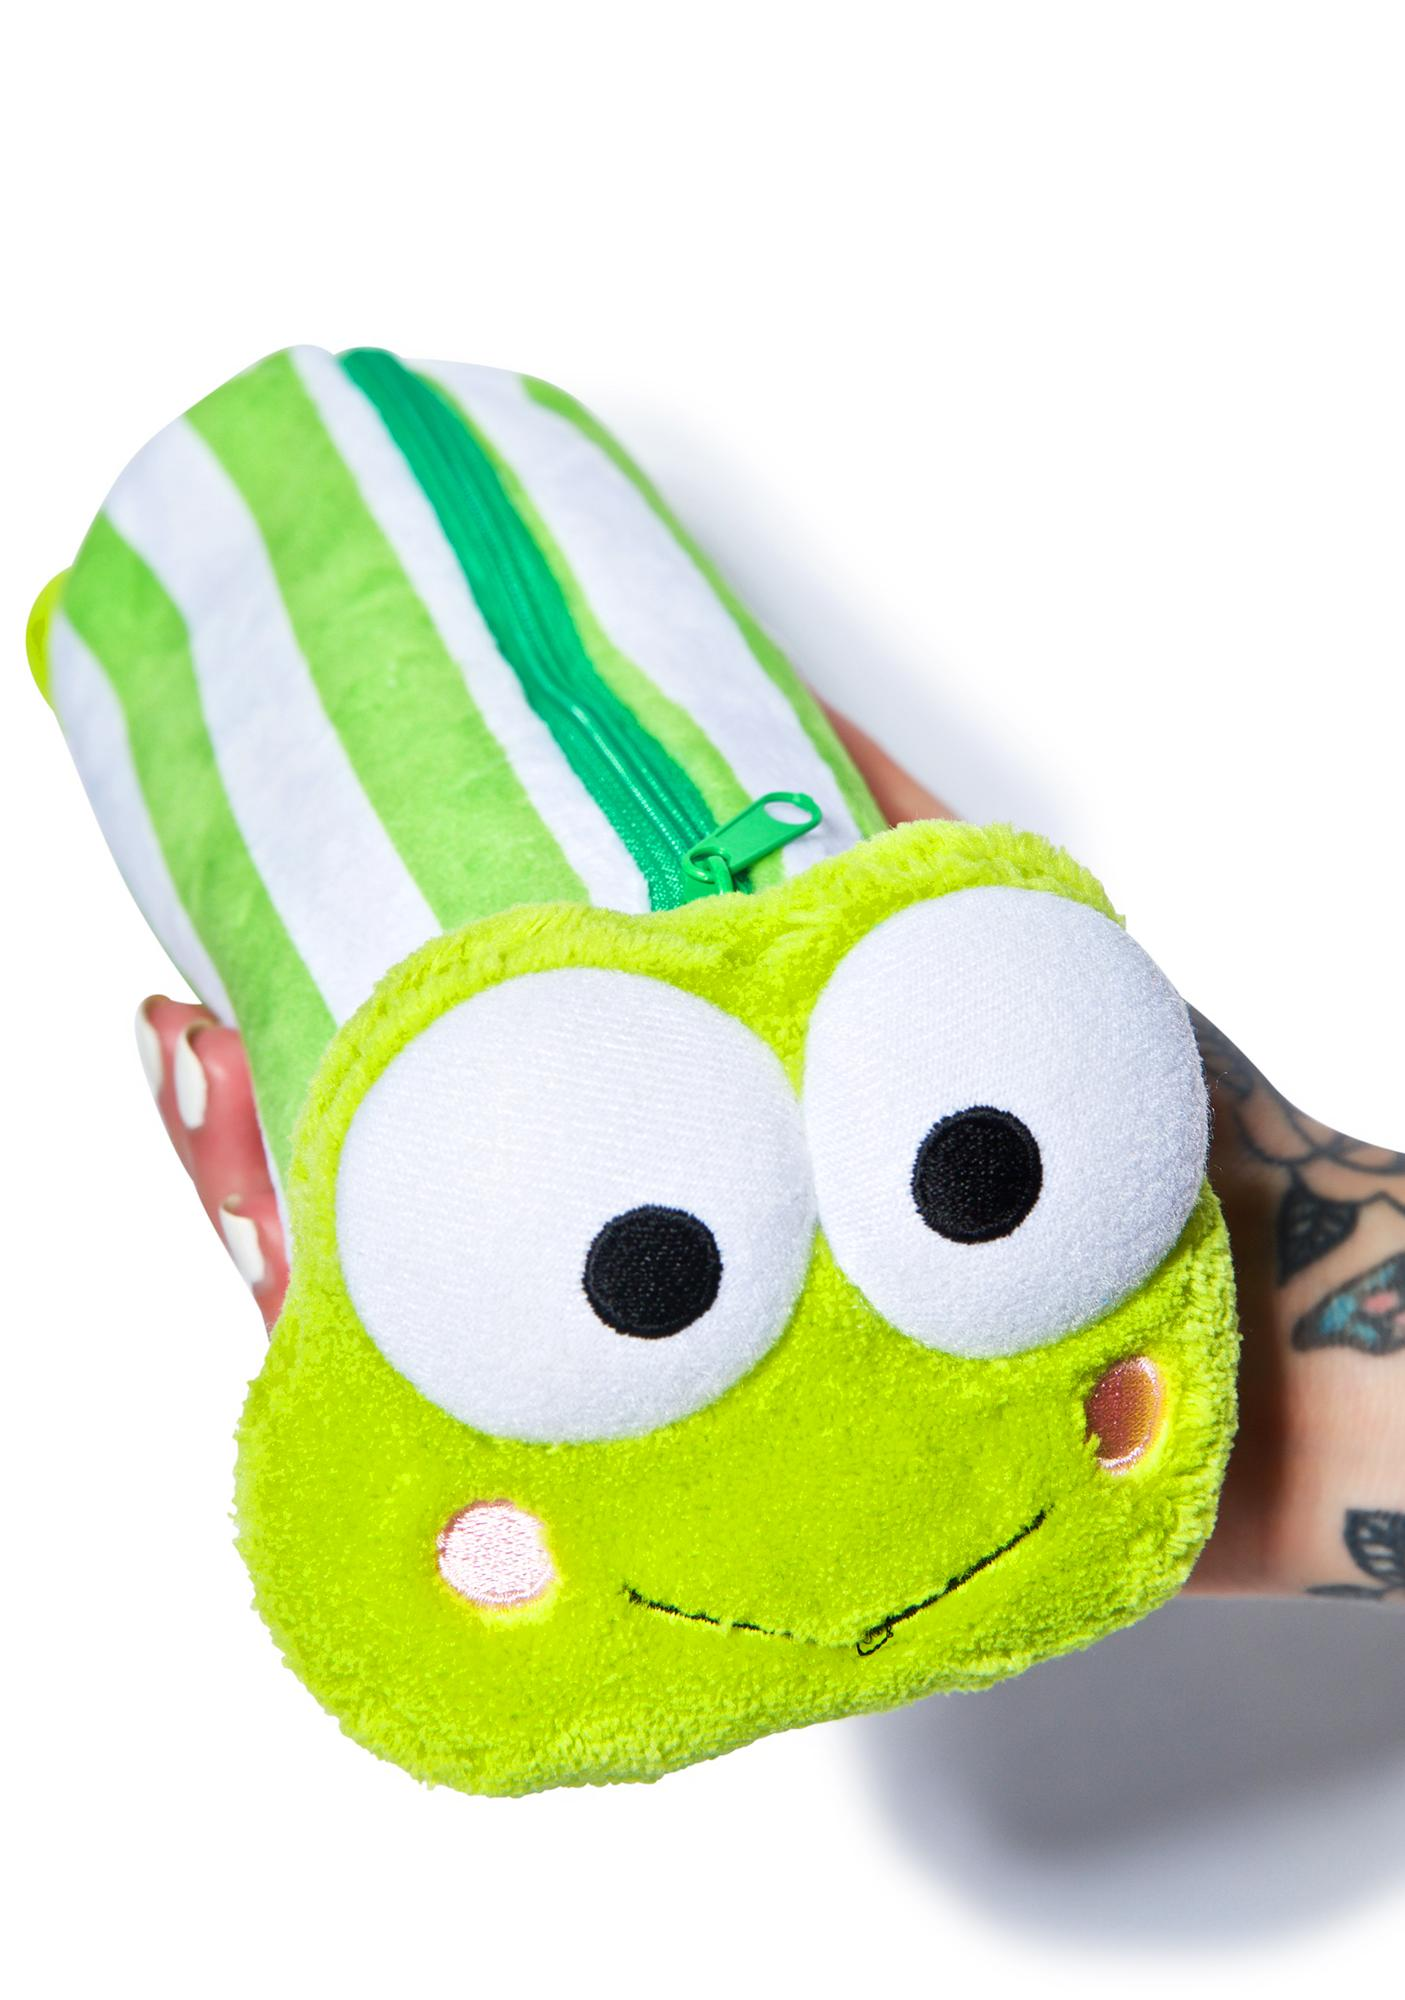 Sanrio Keroppi Green Stripe Pencil Case